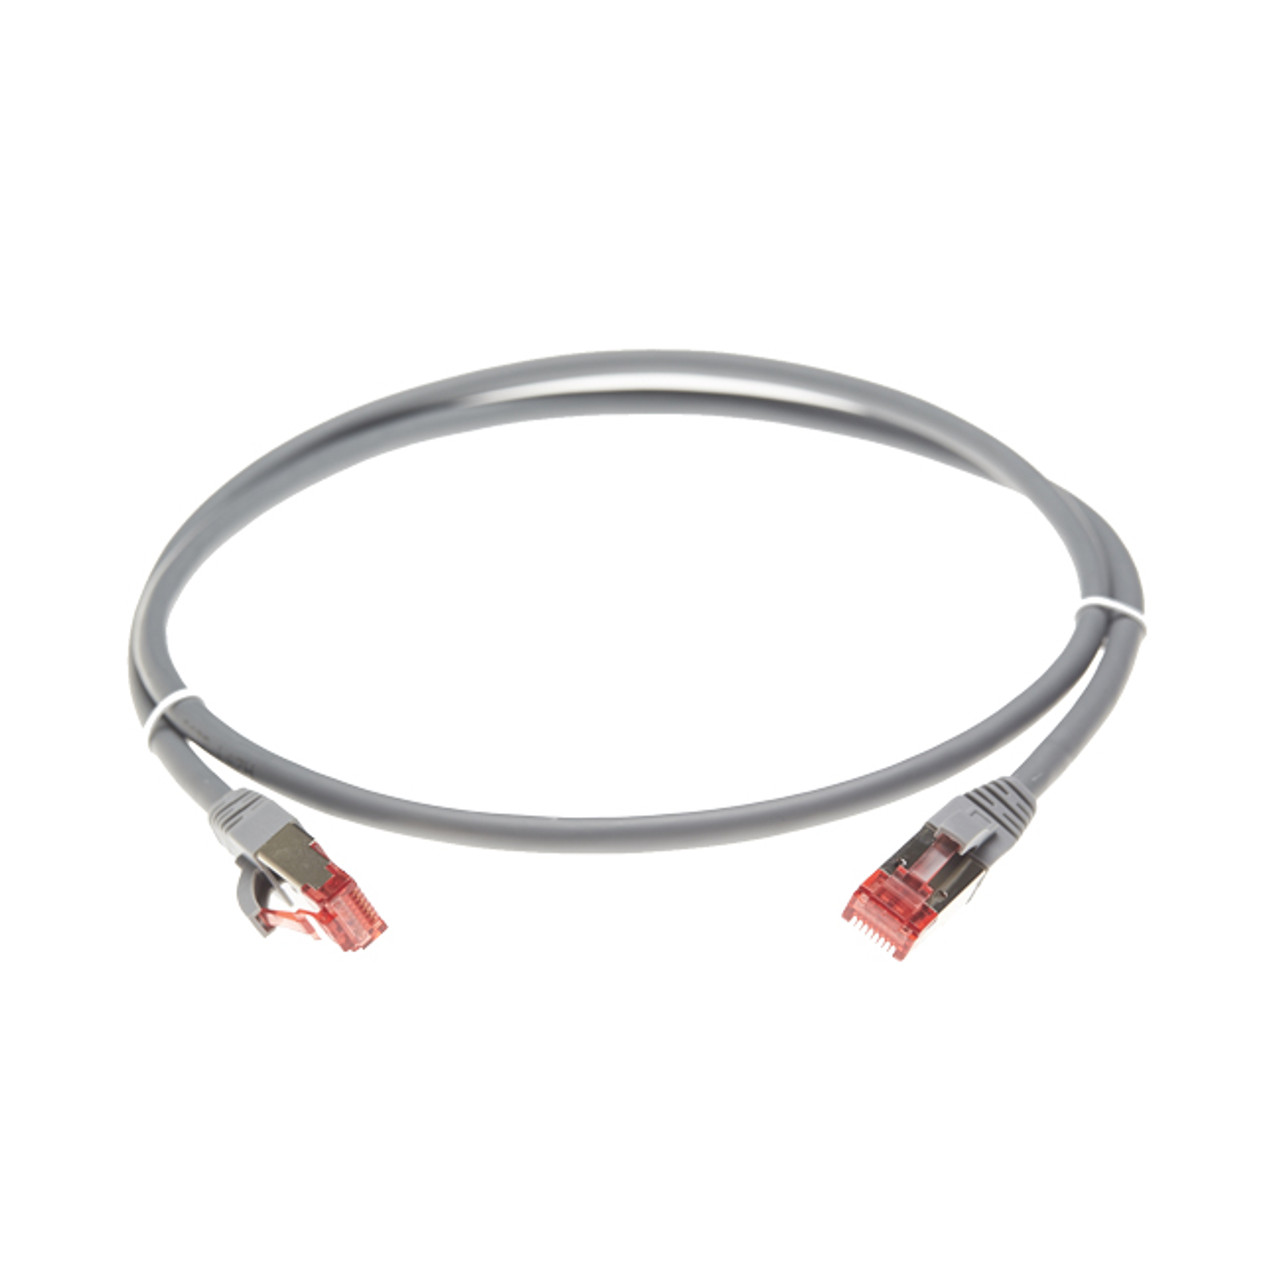 Image for 7m Cat 6A S/FTP LSZH Ethernet Network Cable. Grey CX Computer Superstore